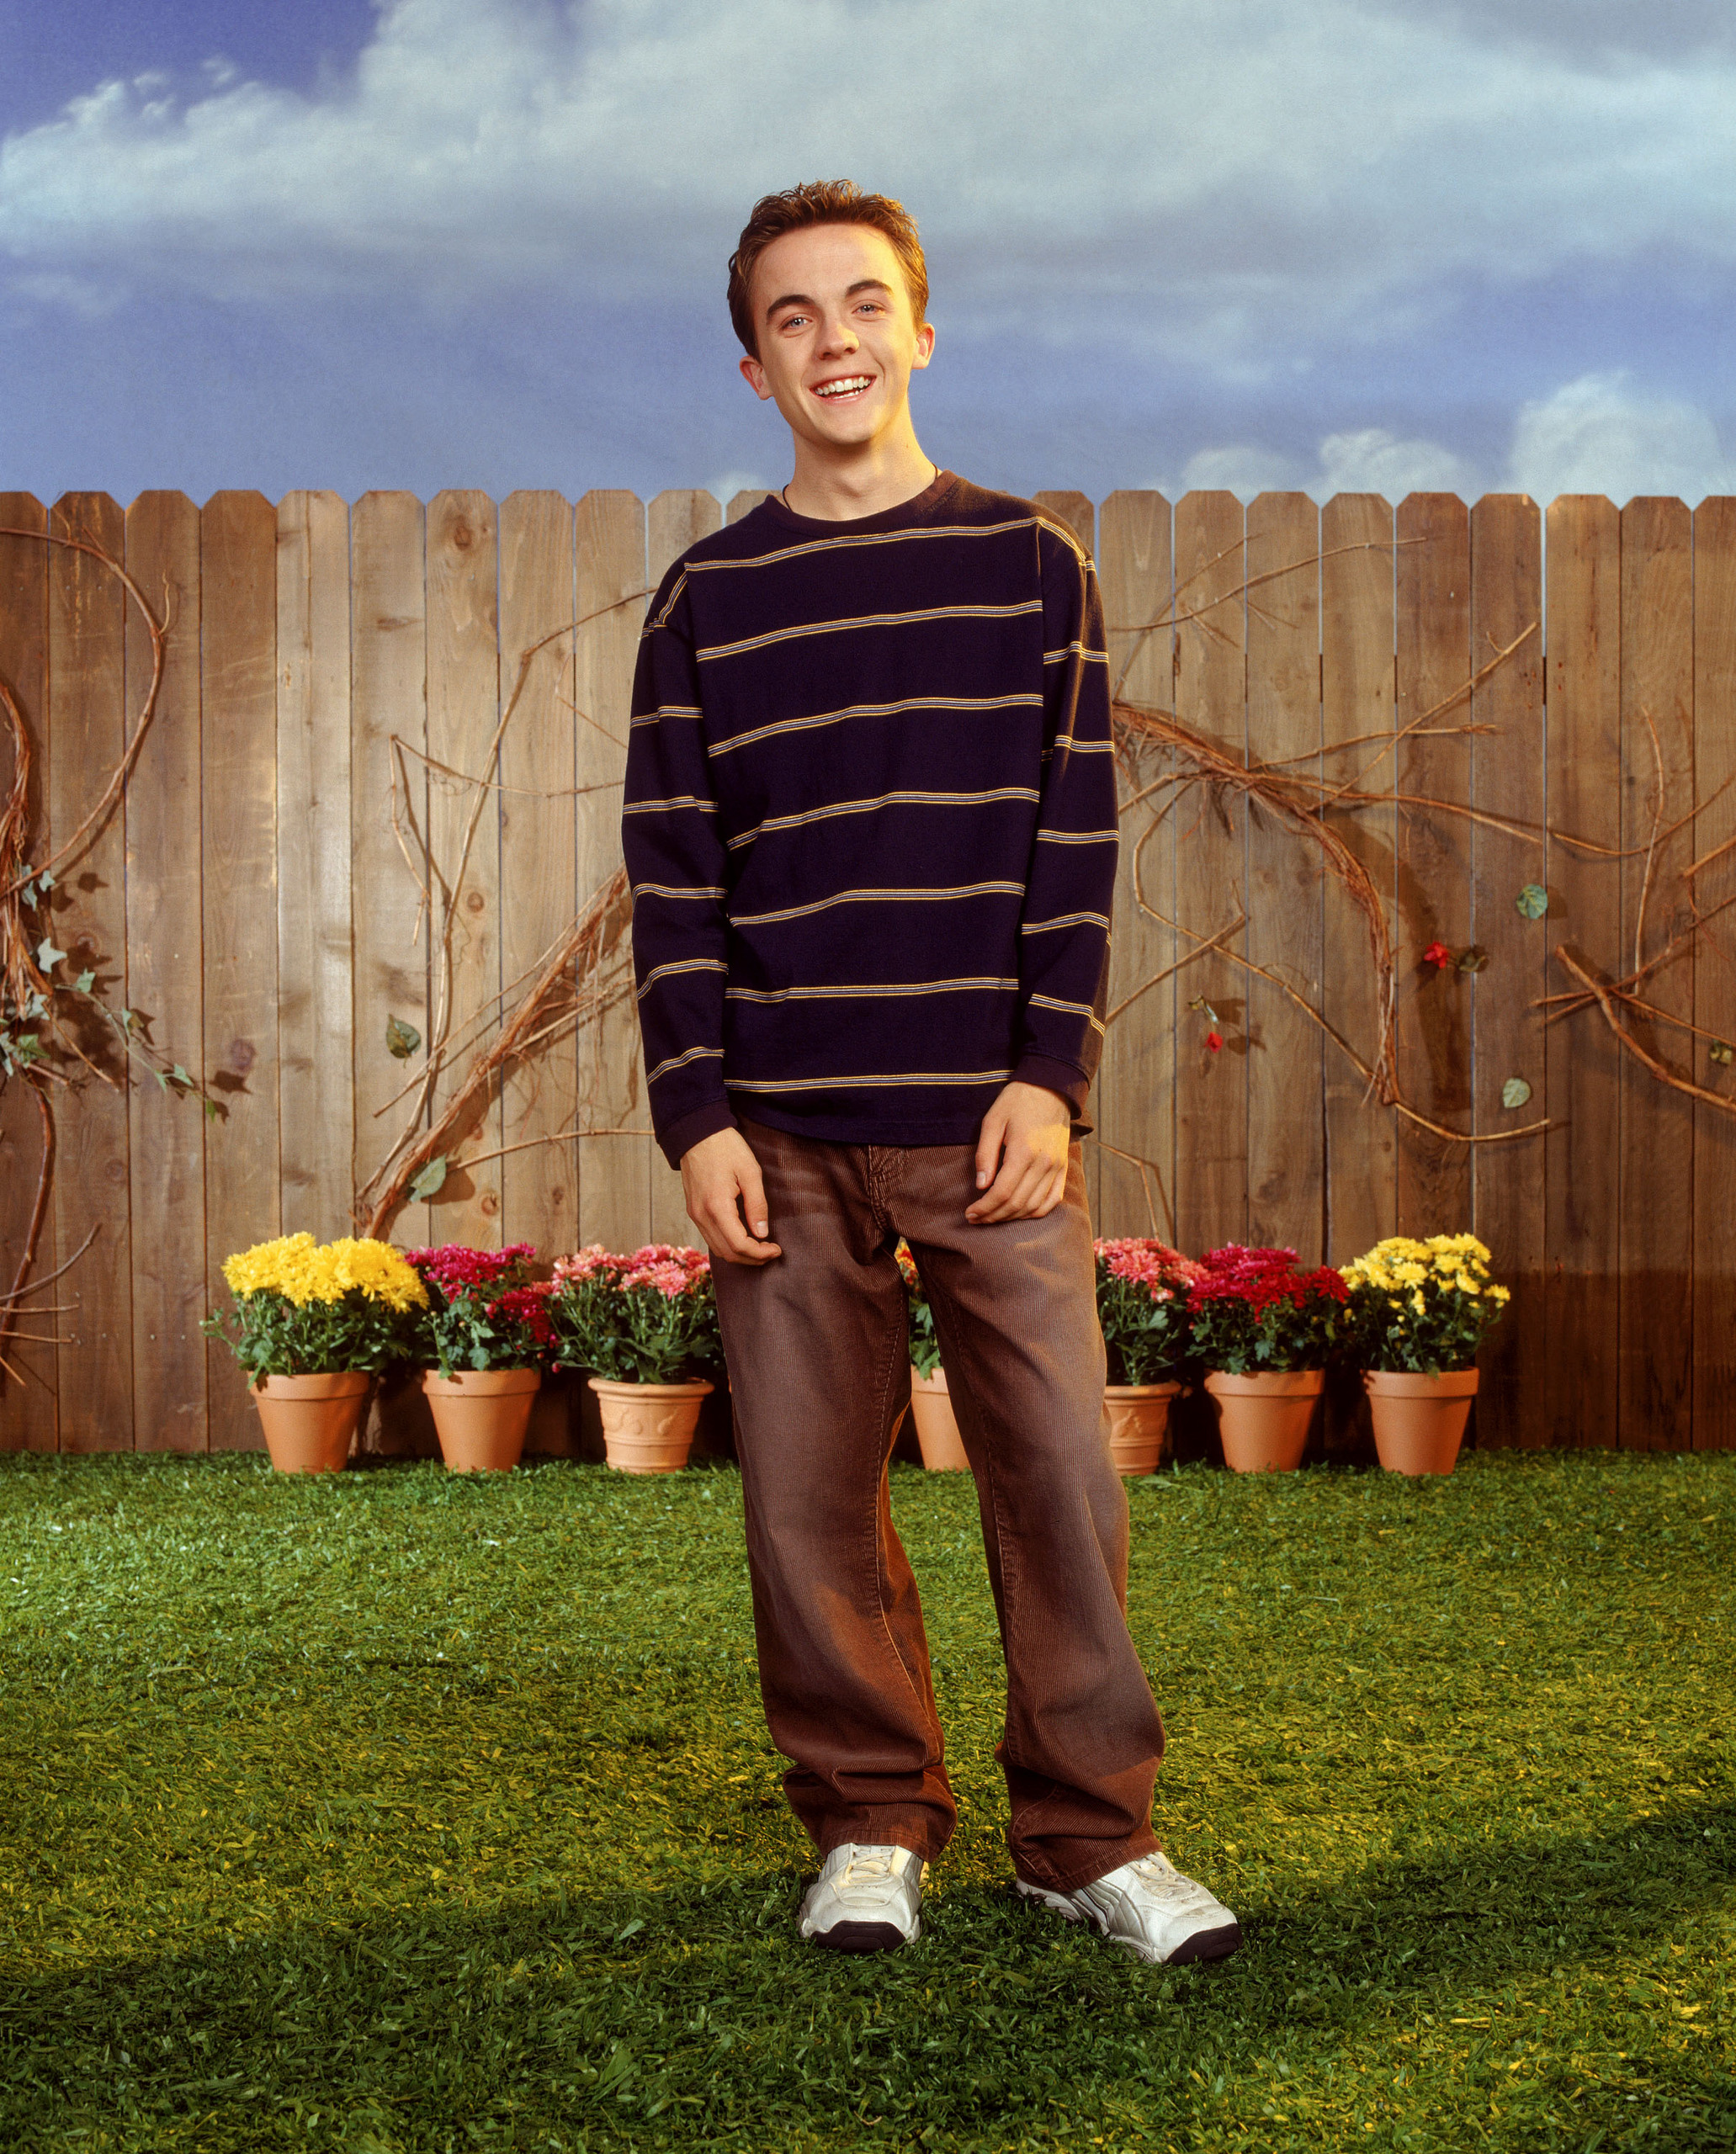 Frankie Muniz - Frankie Muniz Photo (33468163) - Fanpop